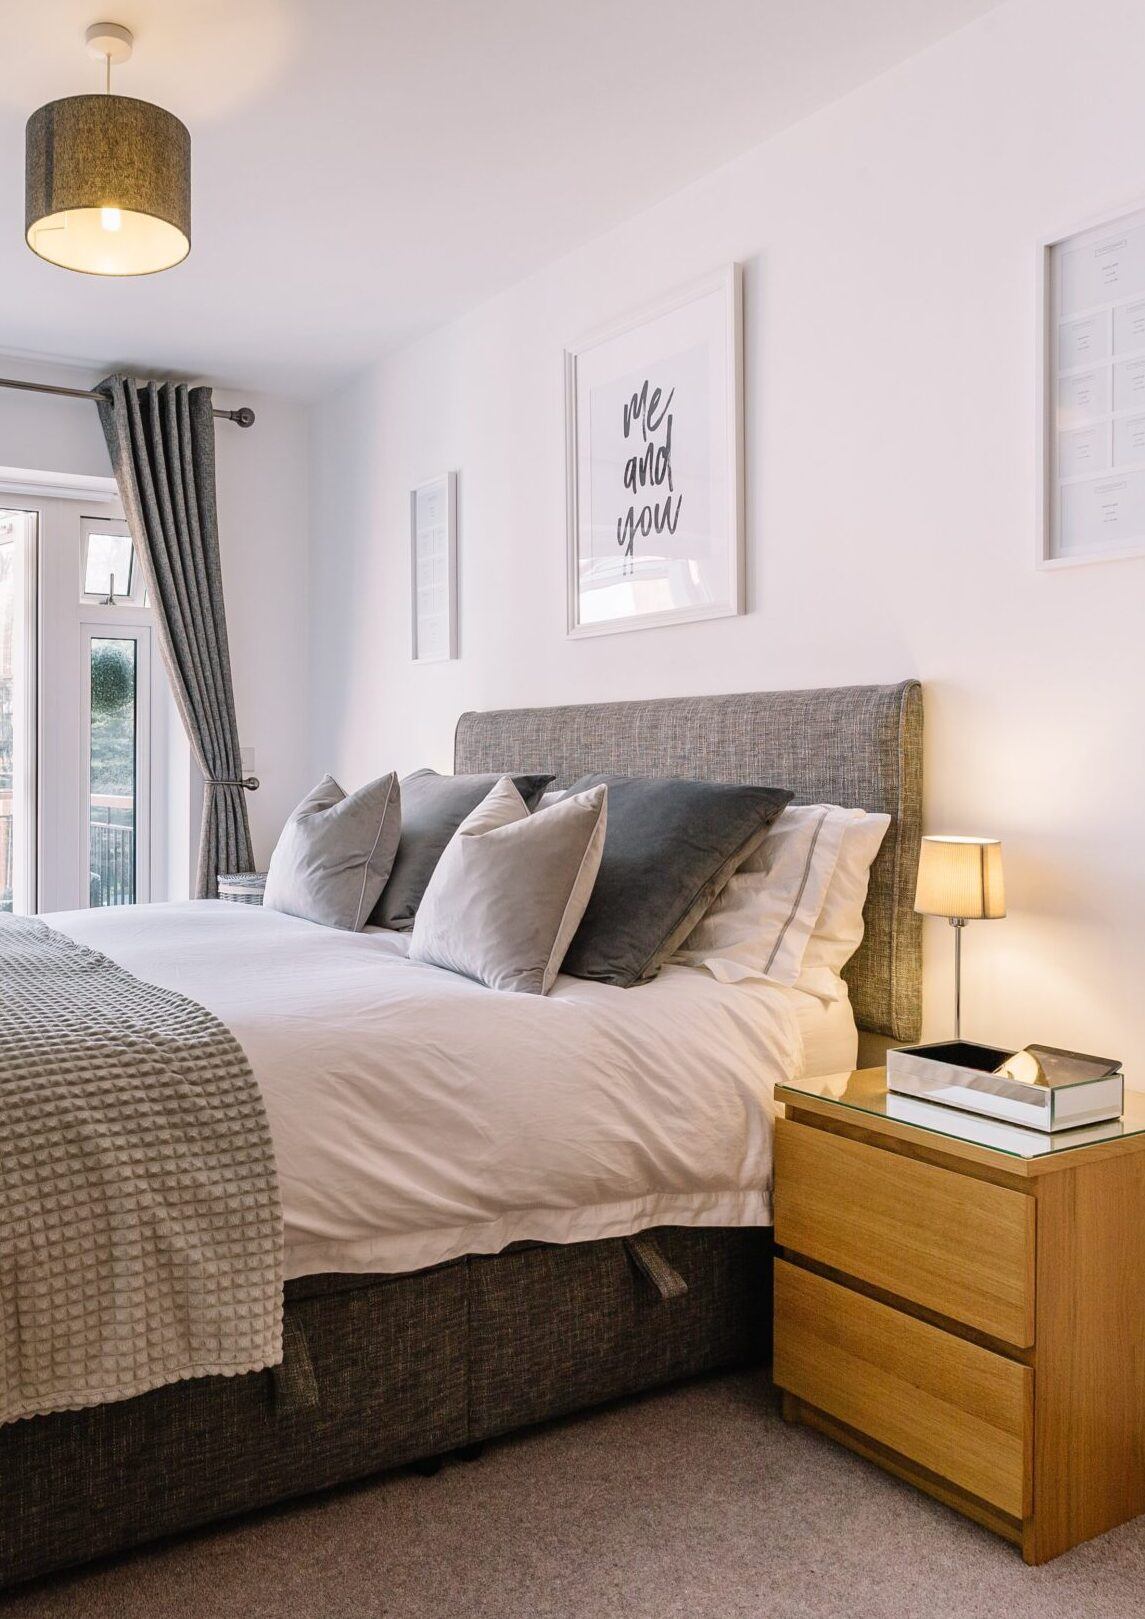 Benefits of furniture packages for landlords